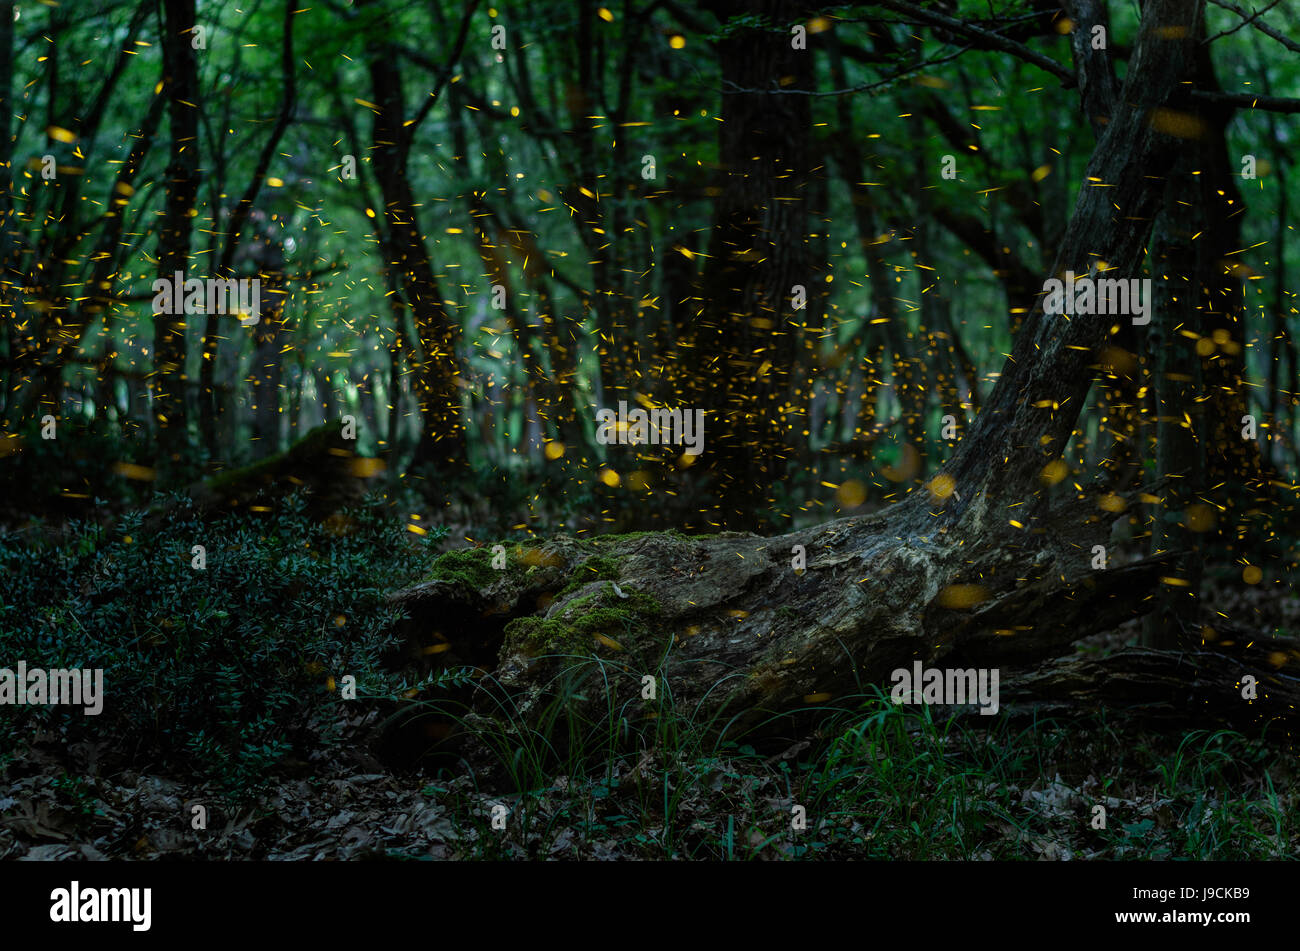 Fireflies/ Night in the forest with fireflies - Stock Image